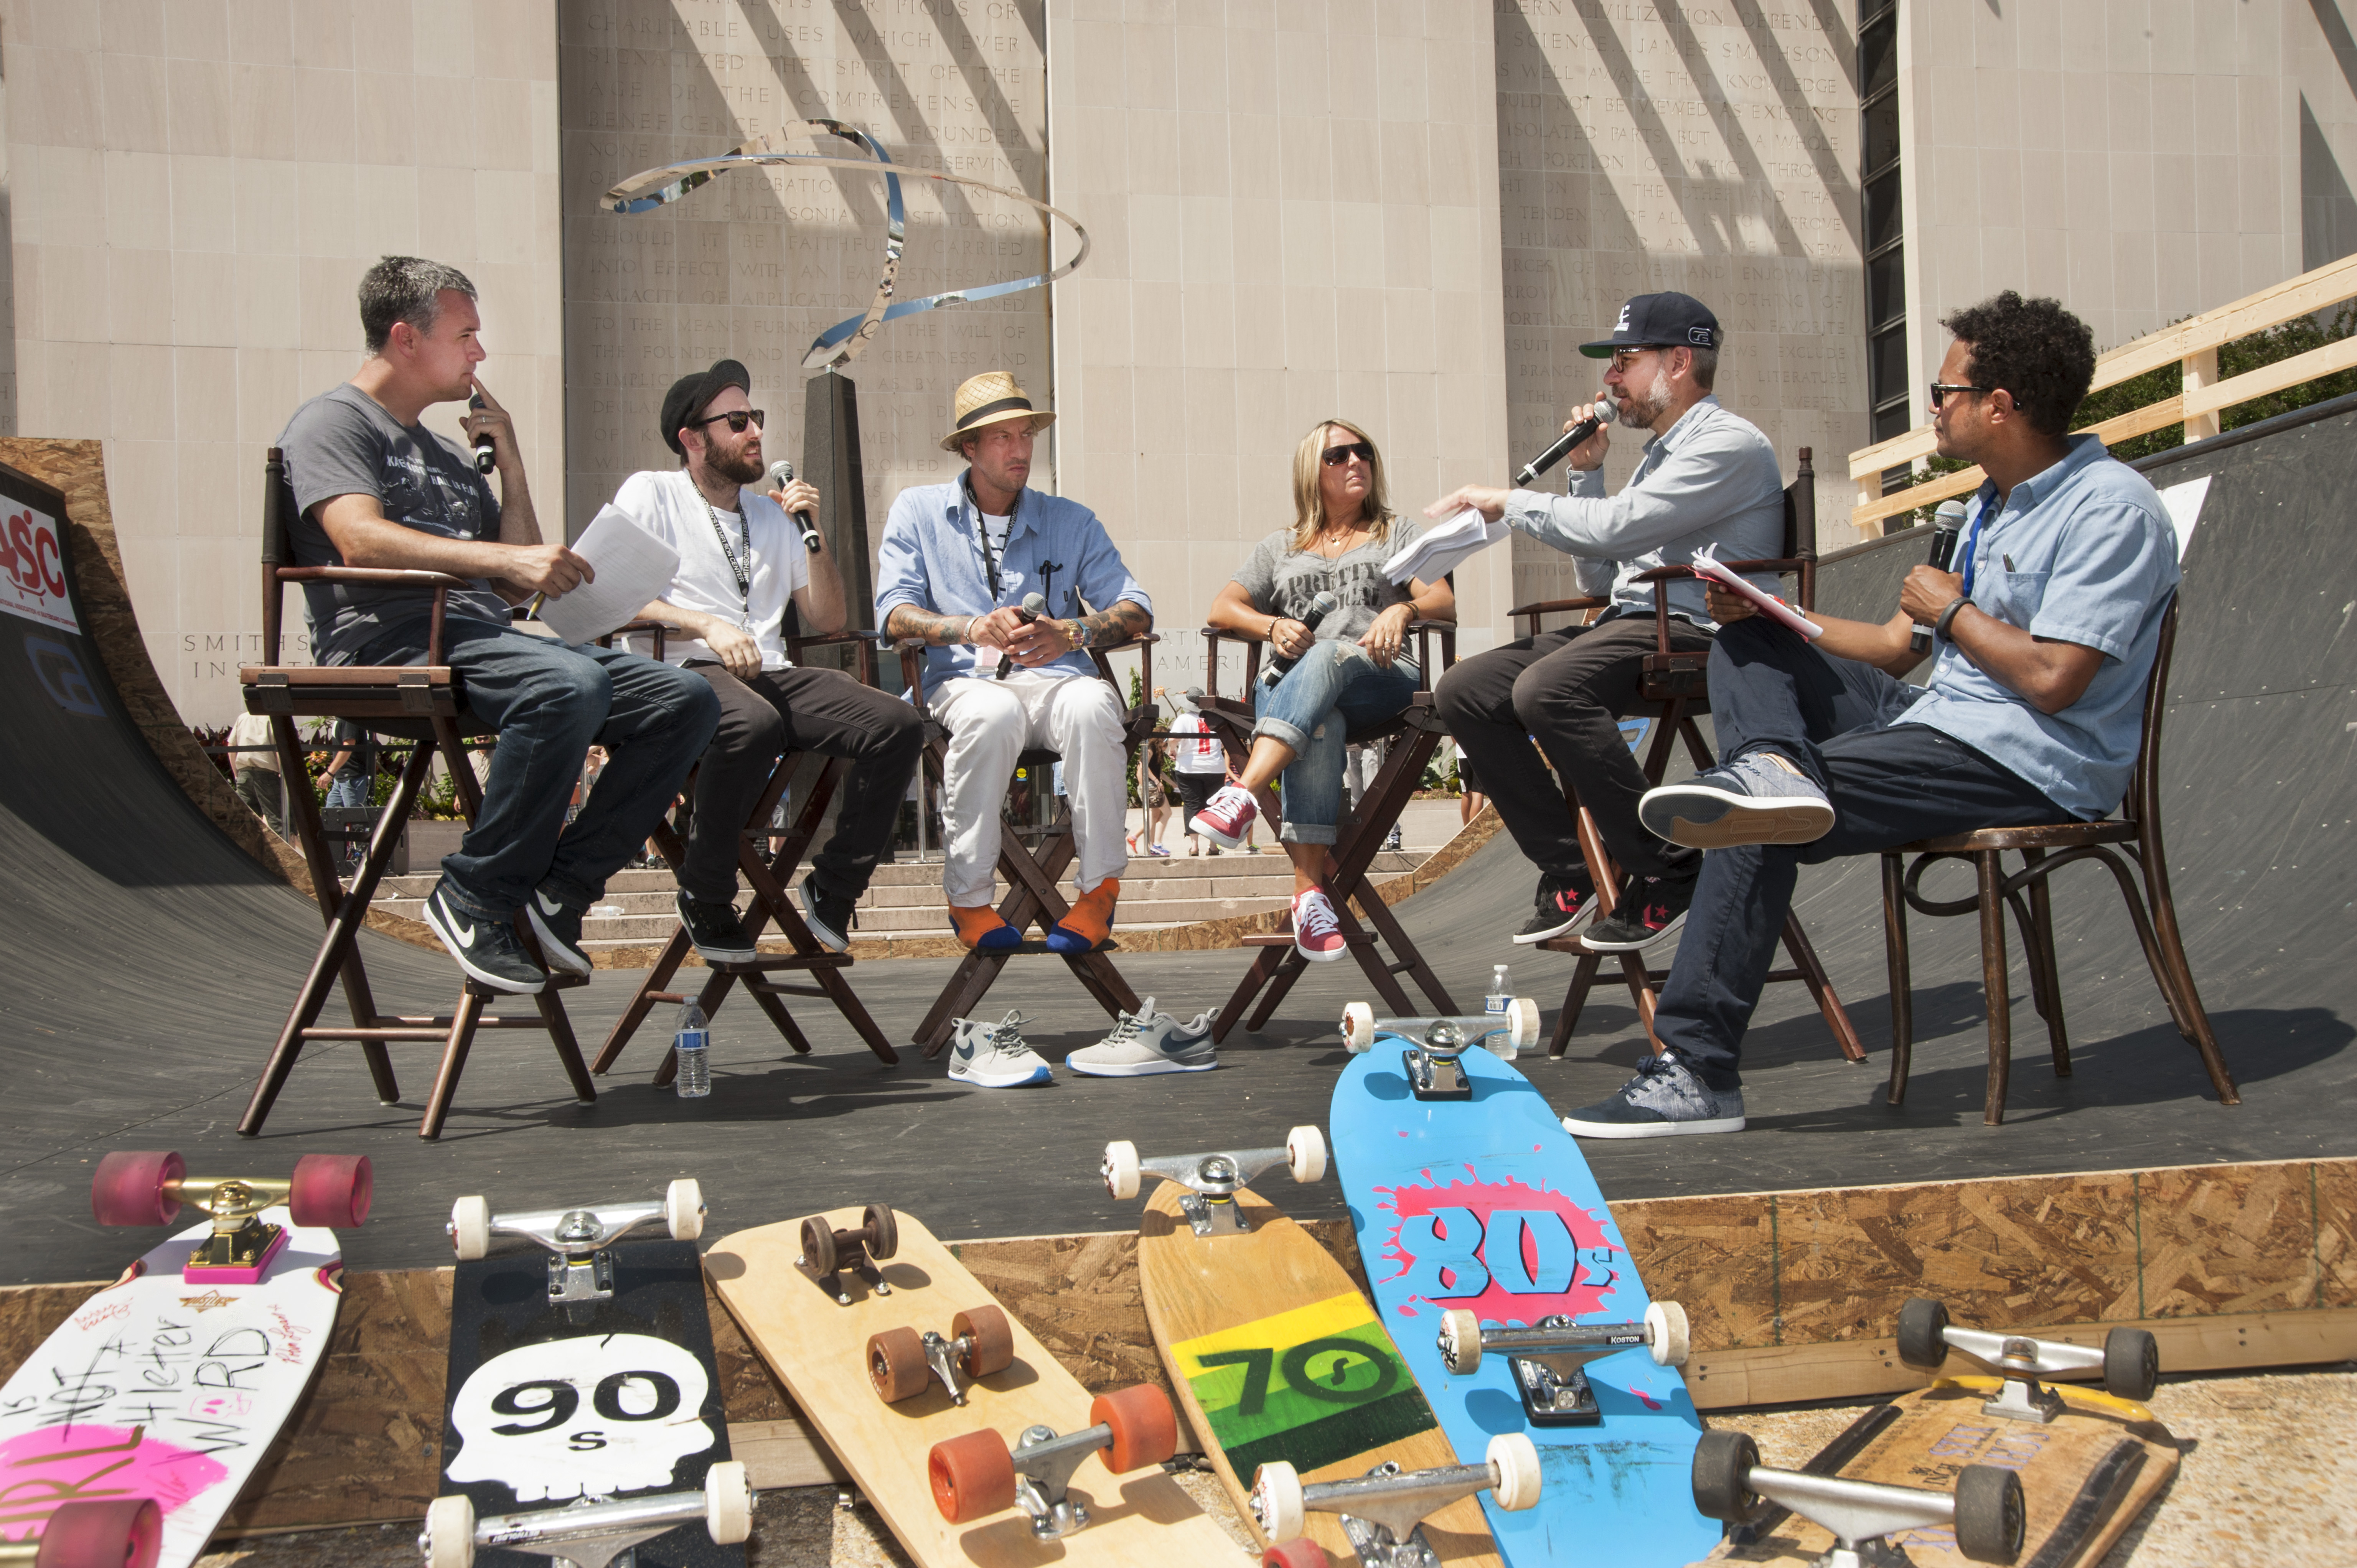 Josh Friedberg, Shawn Carboy, Brian Anderson, Cindy Whitehead, Ryan Clements, and Chris Pastras at Innoskate.